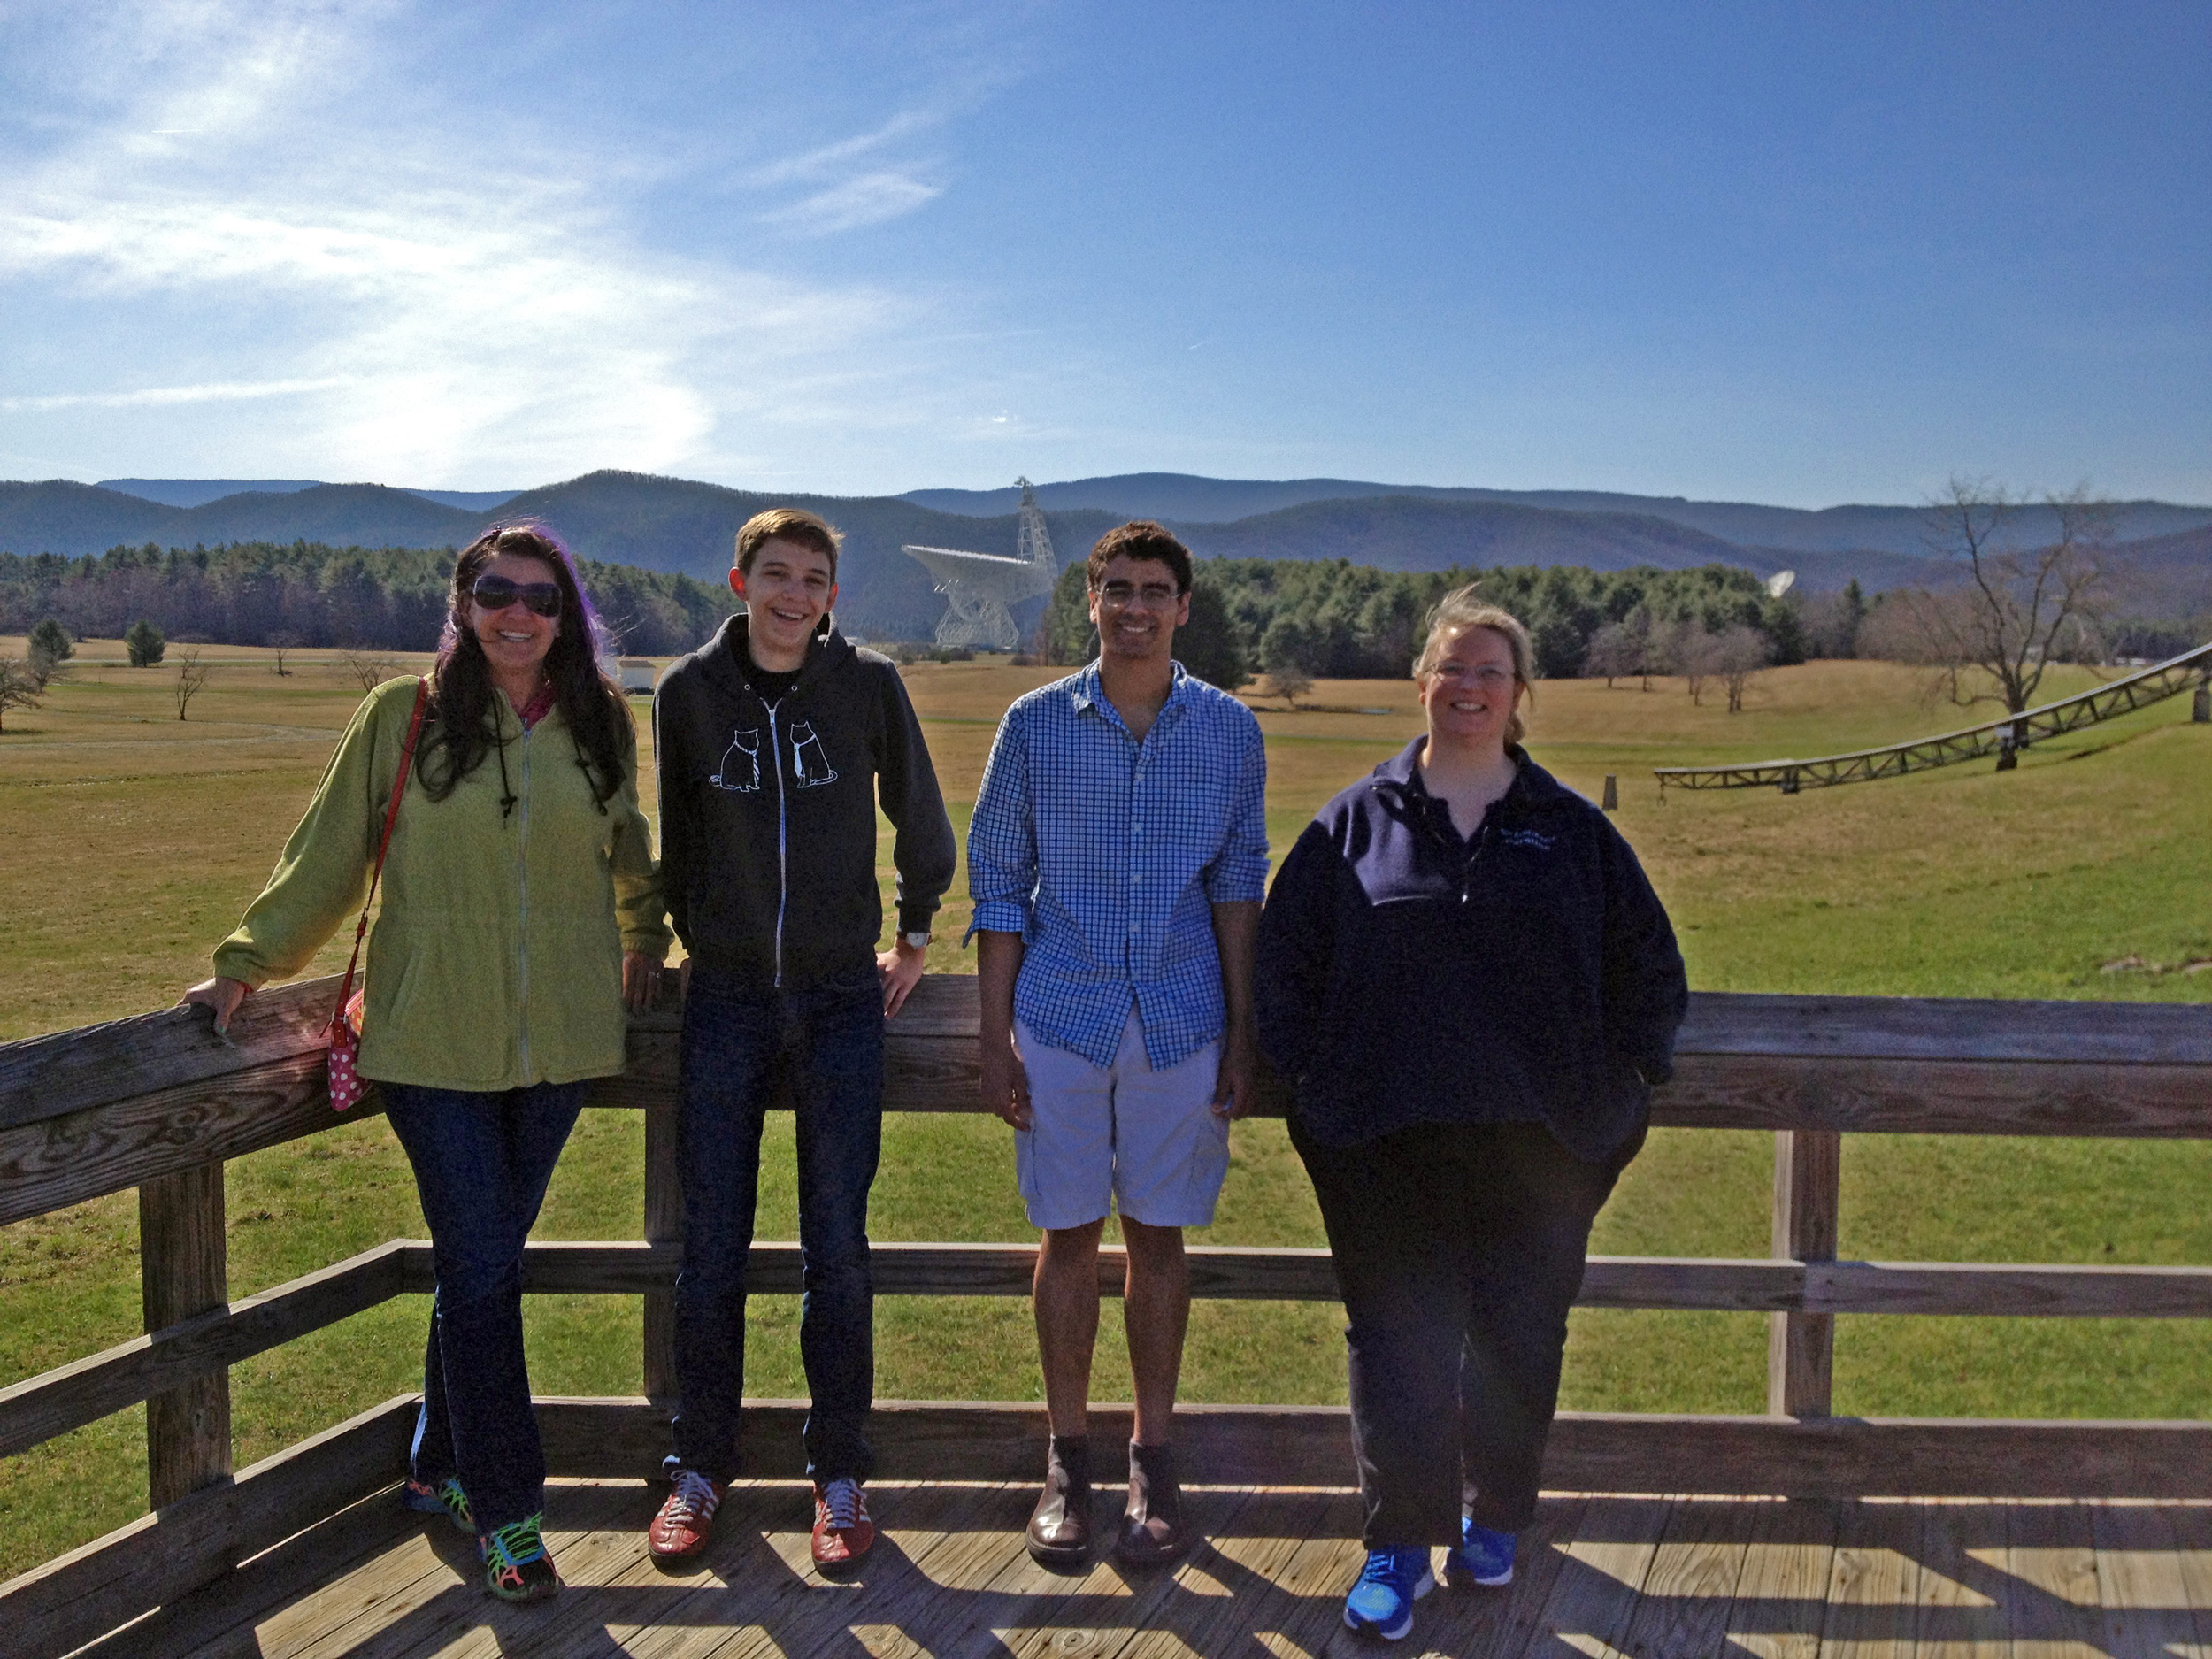 Thanks to parent Melissa Dana for driving and hanging out with us all weekend at the NRAO in Greenbank, West Virginia